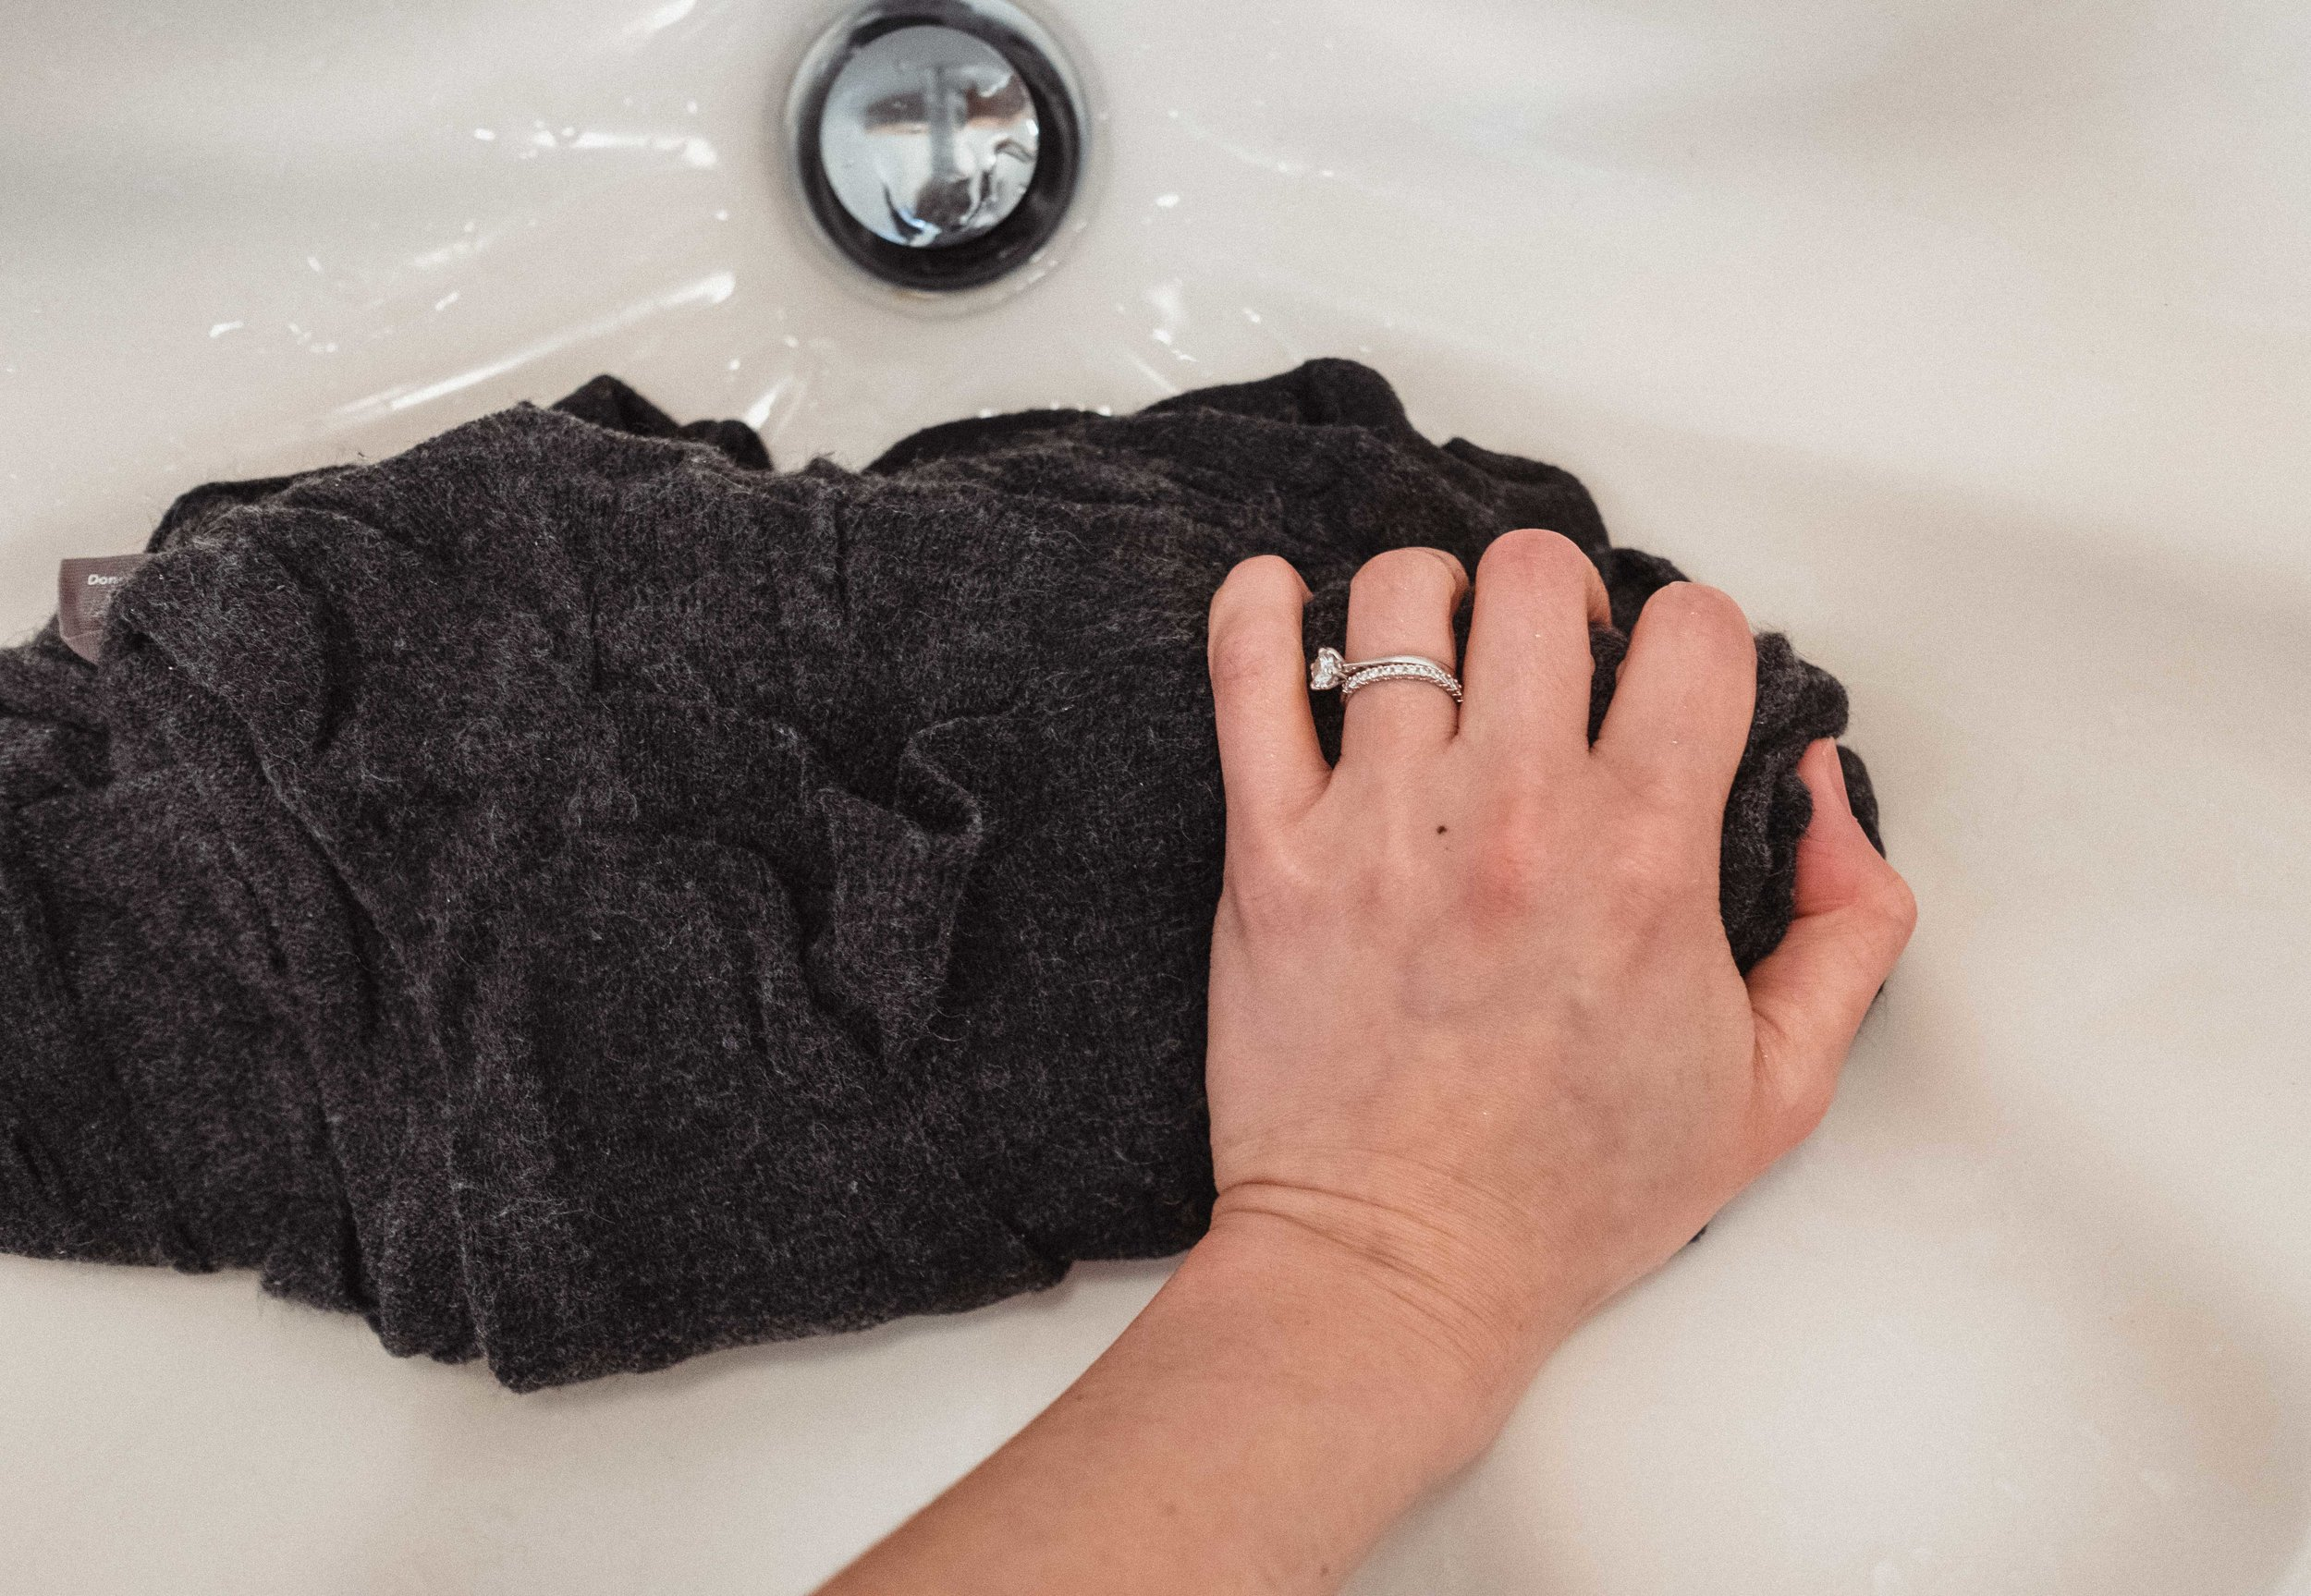 Step 4:  after you have drained the water, keeping the sweater in its natural shape, gently squeeze out the water. Again, do NOT wring out the sweater. It does not have to be completely dry at this point and wringing the sweater will cause stretching in the material.